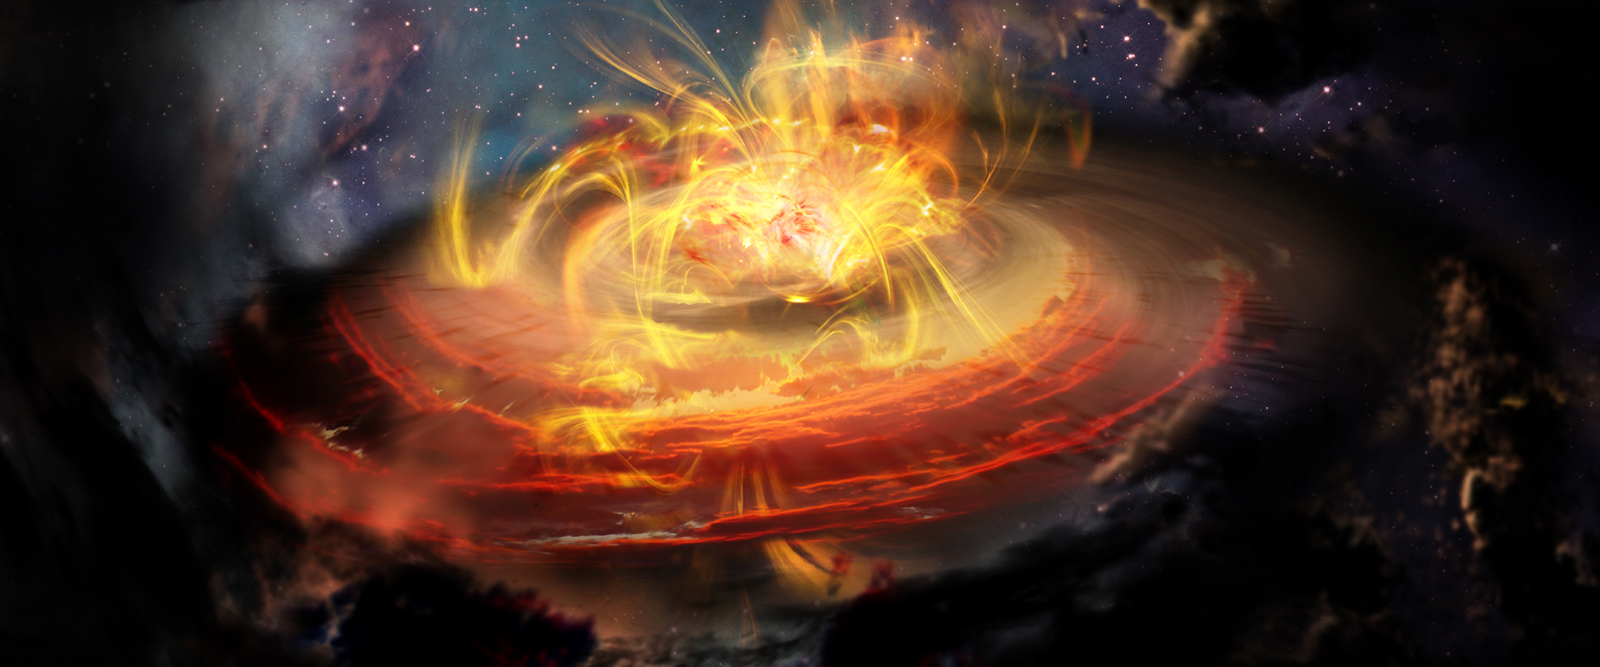 Chaotic magnetic fields pose no obstacle to star birth